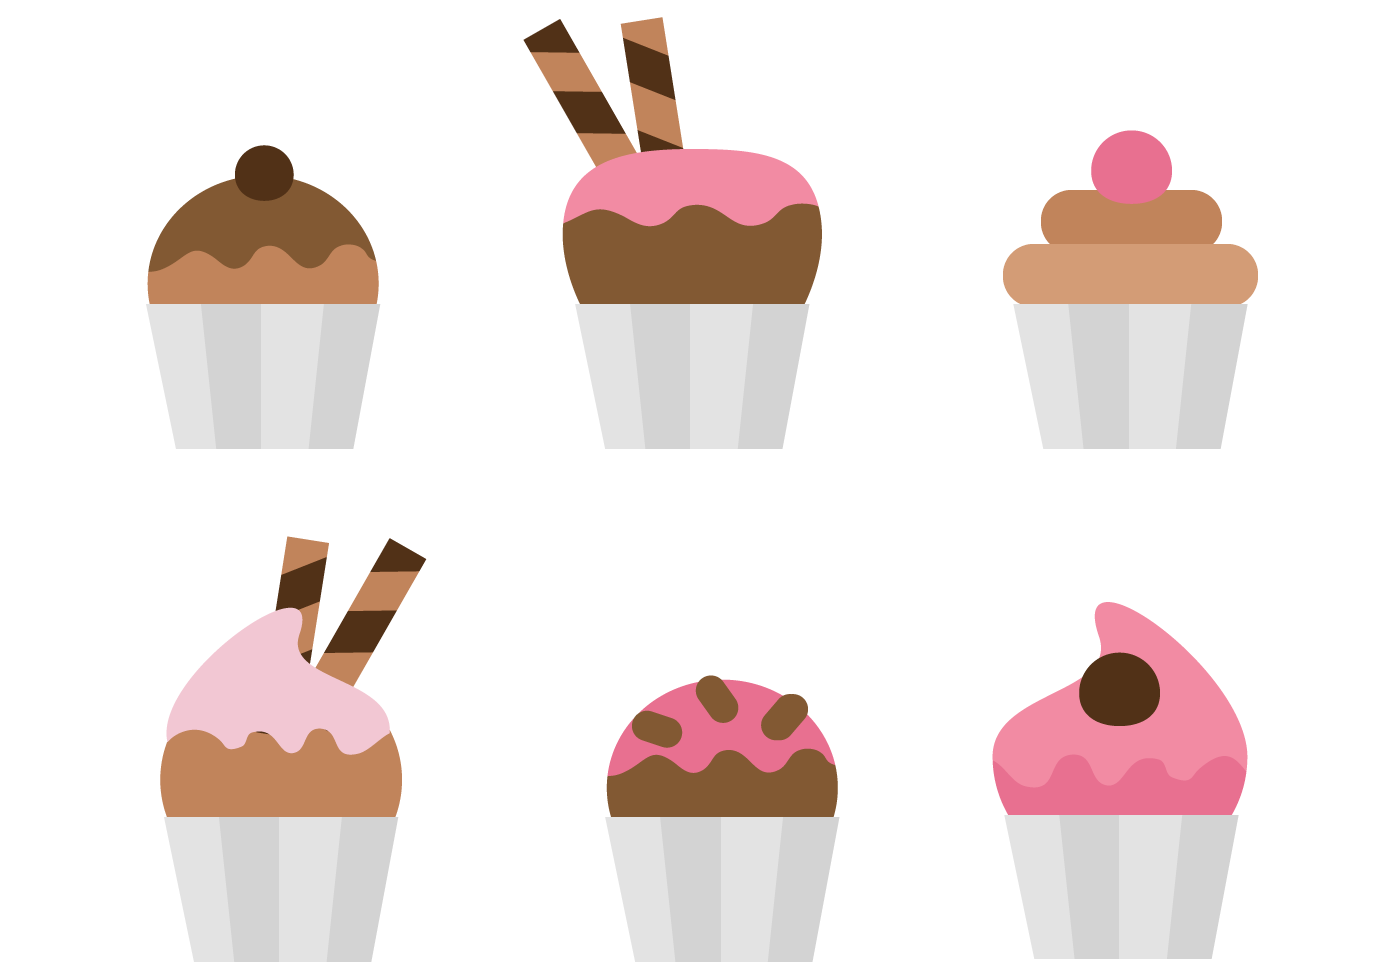 Cupcake Vector Art : Free Cupcakes Vector - Download Free Vector Art, Stock ...